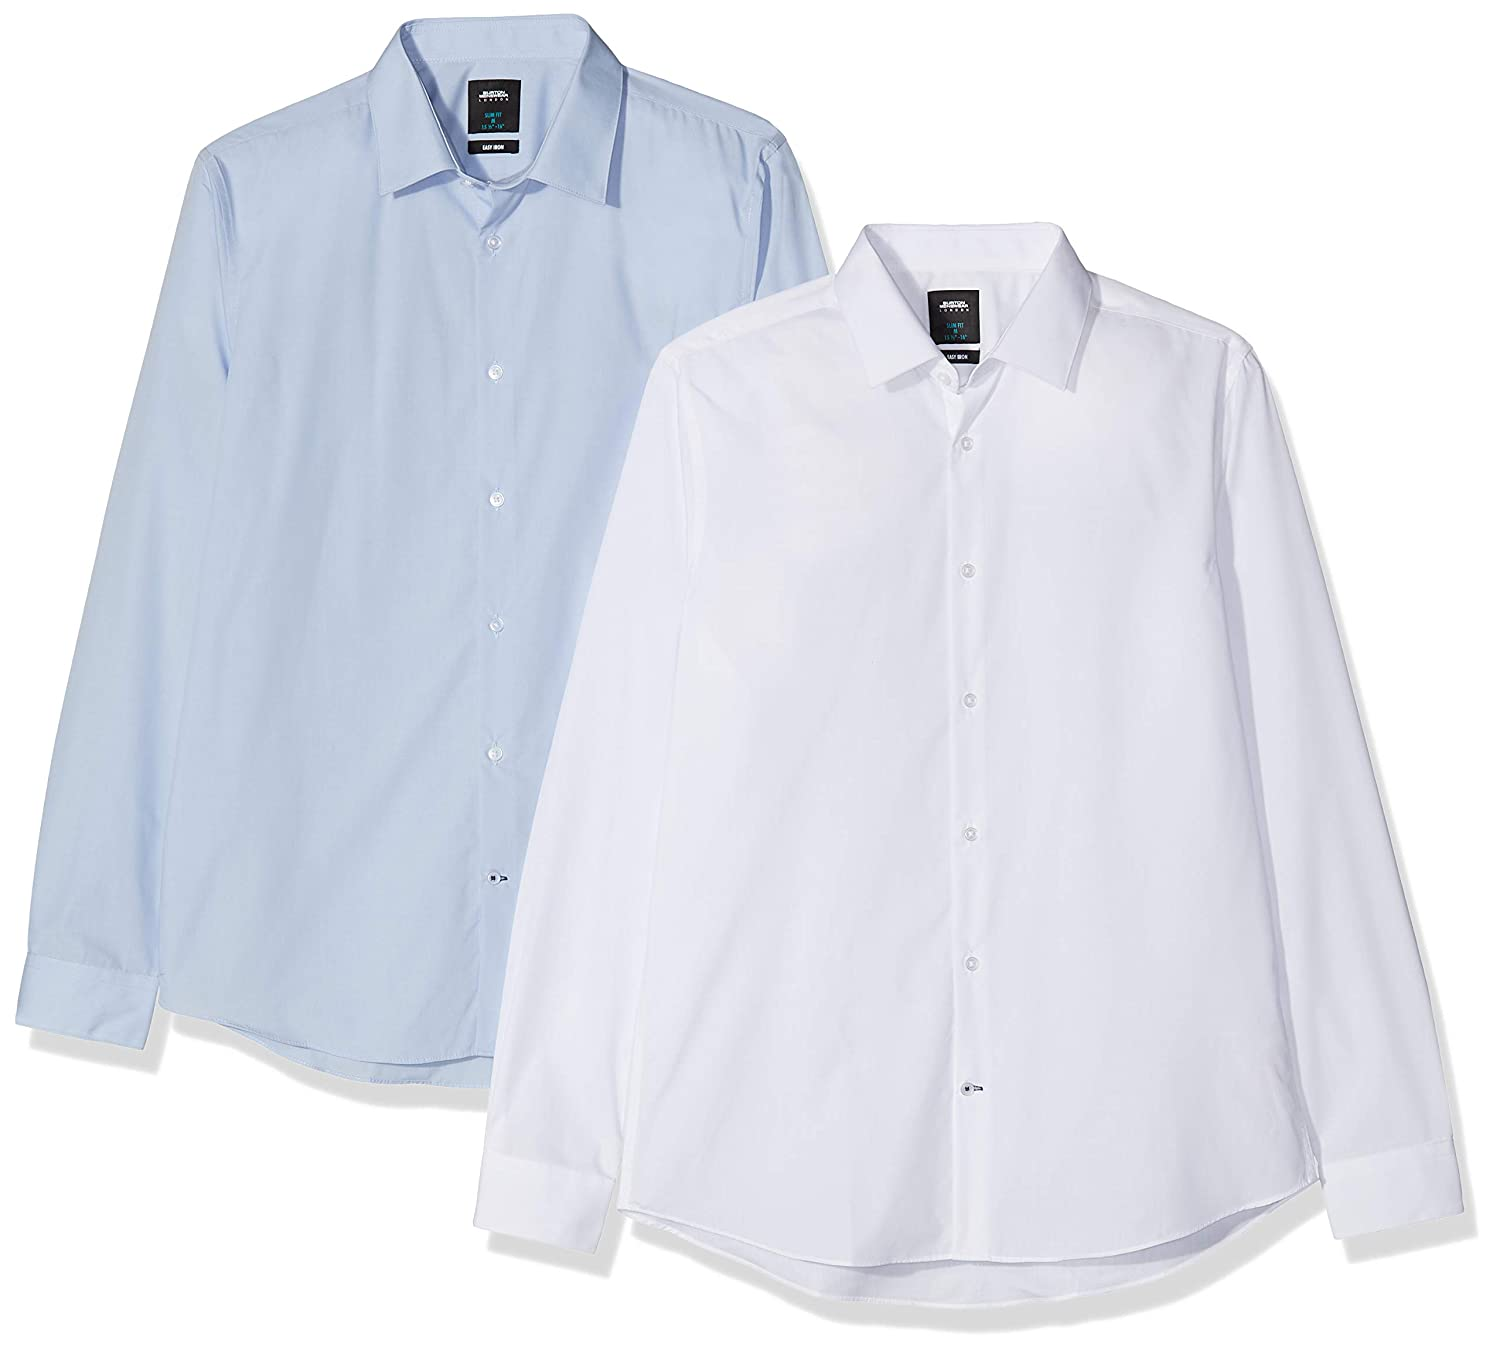 Burton Menswear London Two Pack White and Blue Slim Fit Shirt Camisa de Vestir 2 para Hombre